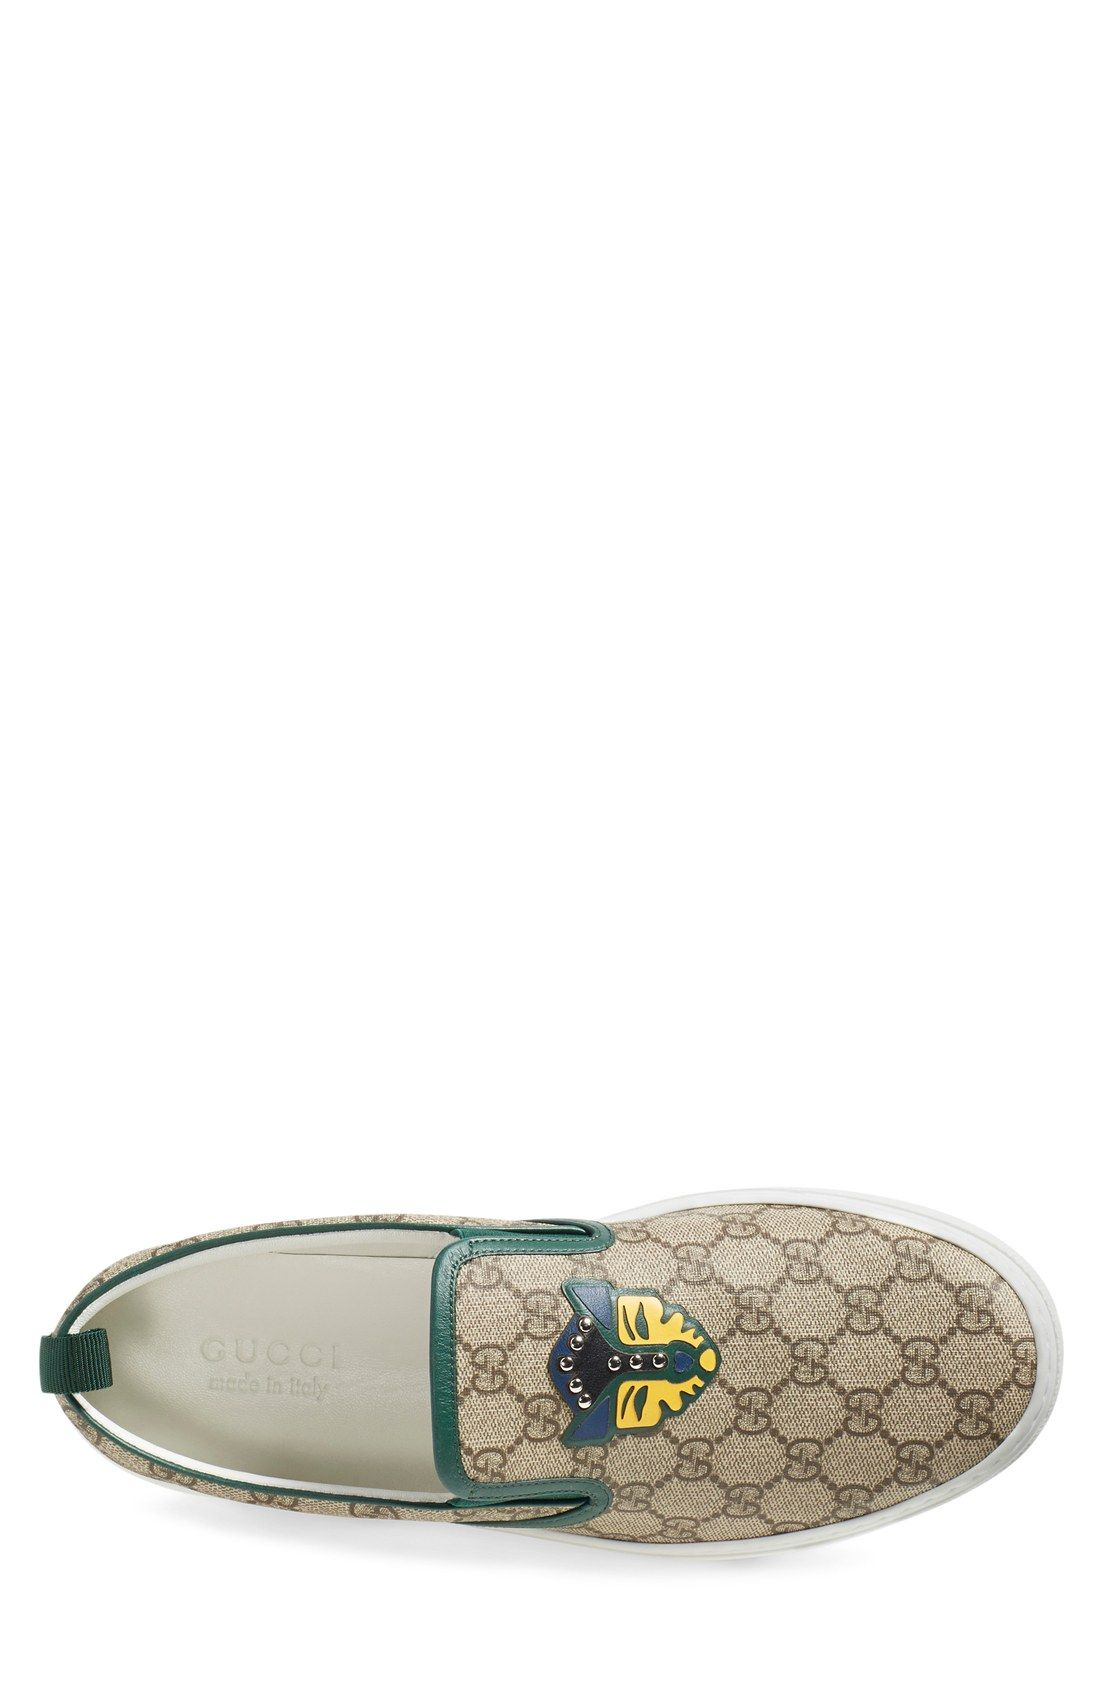 0dbfdaba4 Gucci 'Dublin' Slip-On Sneaker (Men) | MEN'S FOOTWEAR | Sneakers ...